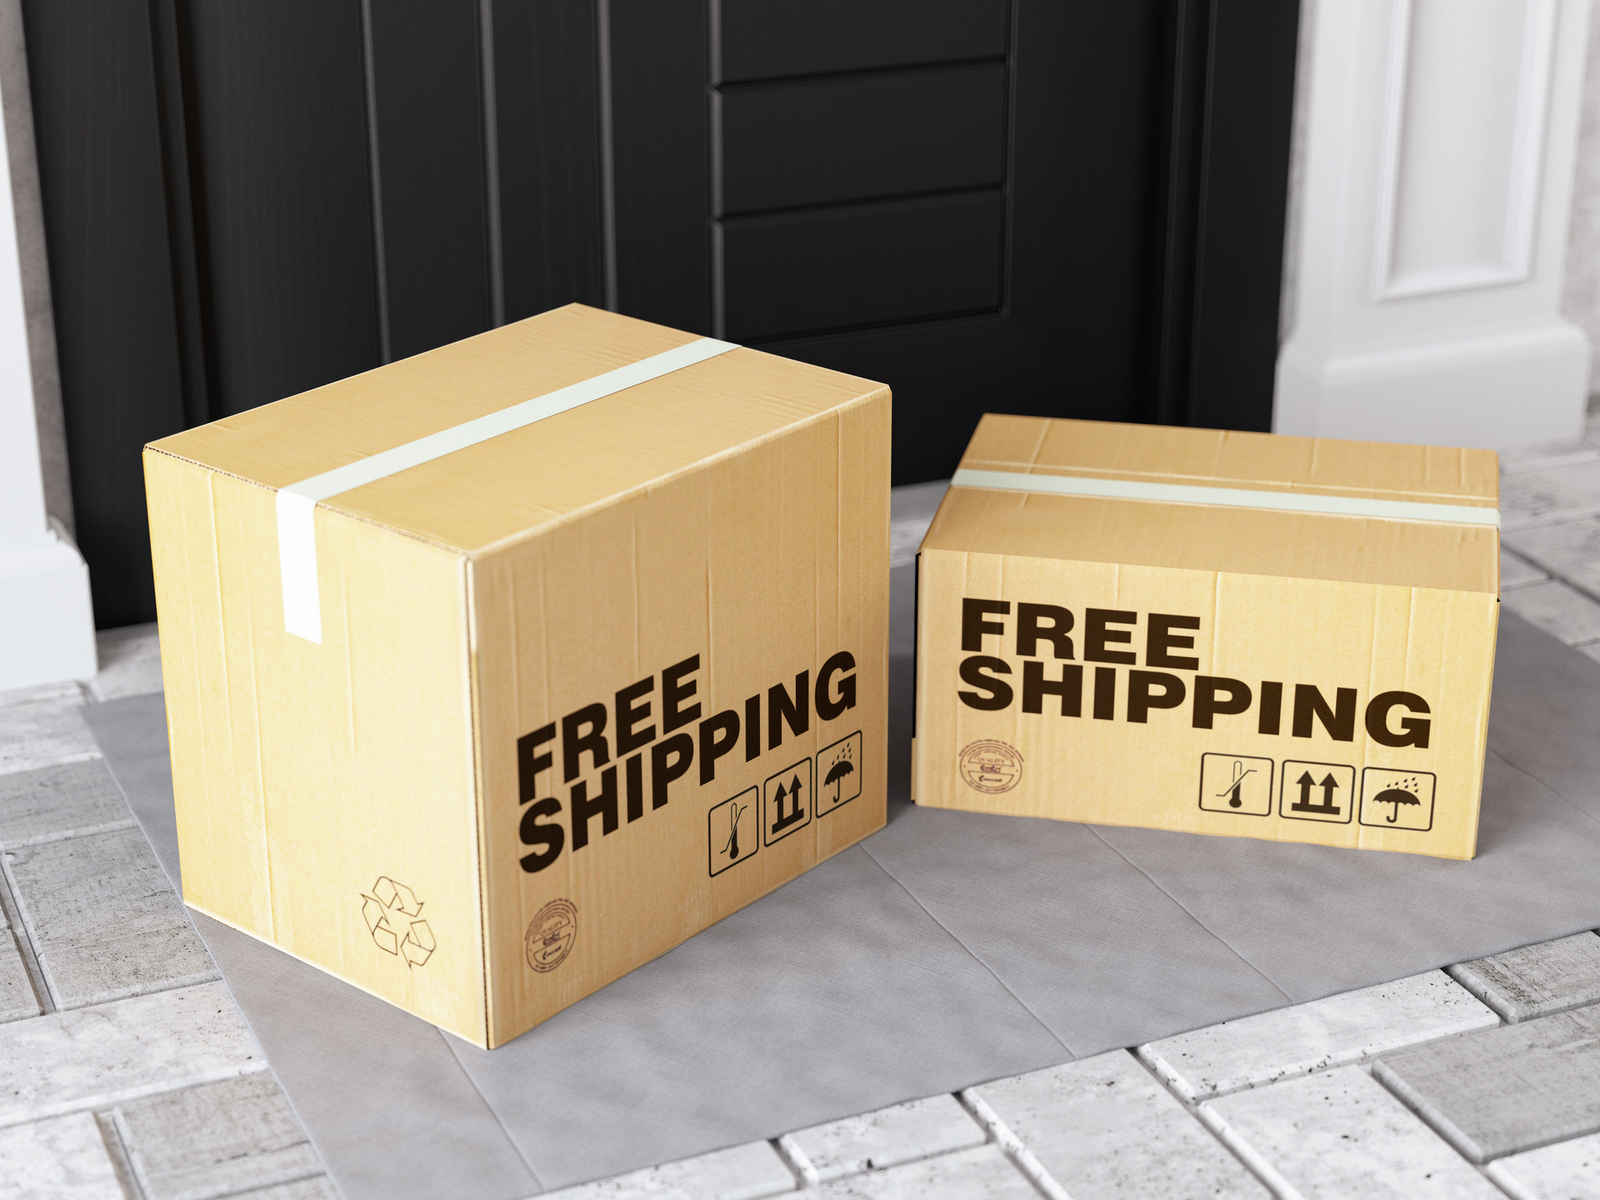 Small Business Showdown: Should Your Small Business Provide Free Shipping to Customers?